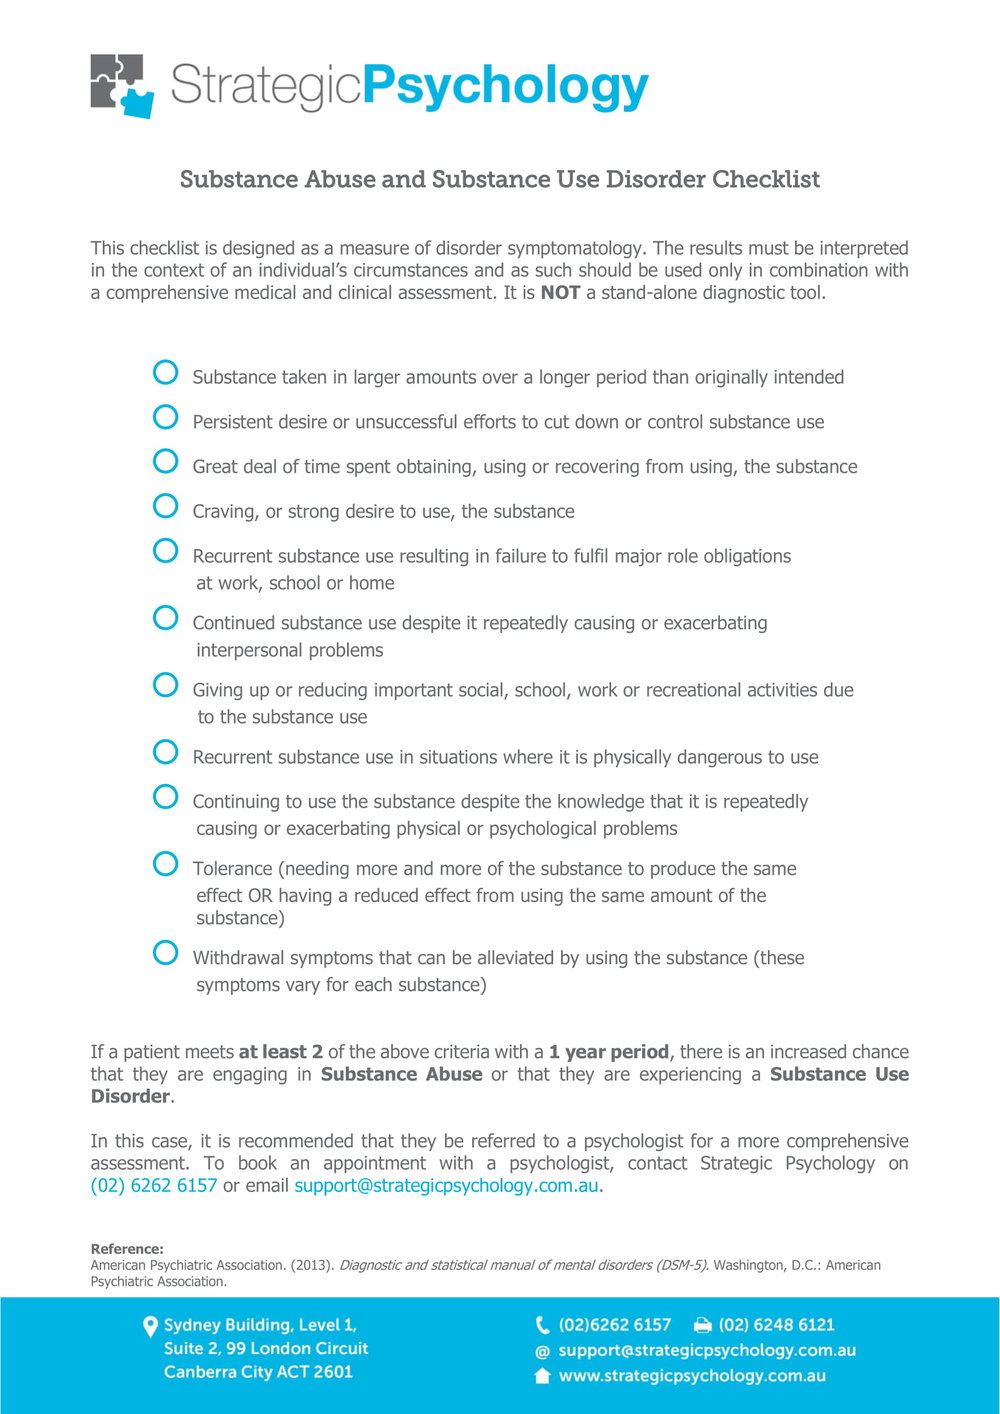 Substance-Abuse-and-Substance-Use-Disorder-Checklist-1.jpg